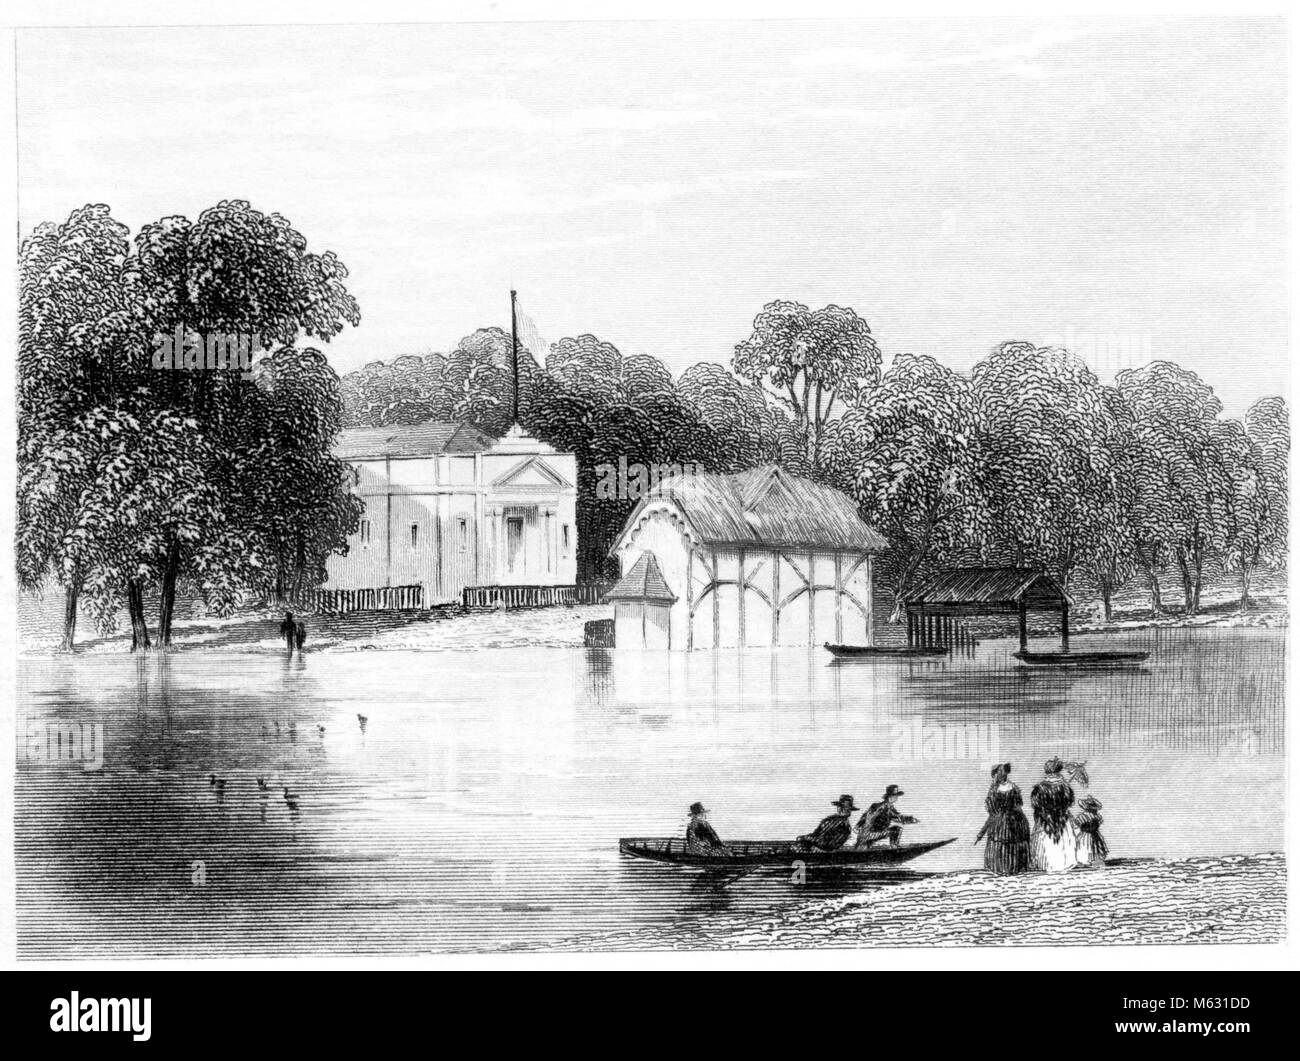 An engraving of the Royal Humane Society, Serpentine, London scanned at high resolution from a book printed in 1851. - Stock Image